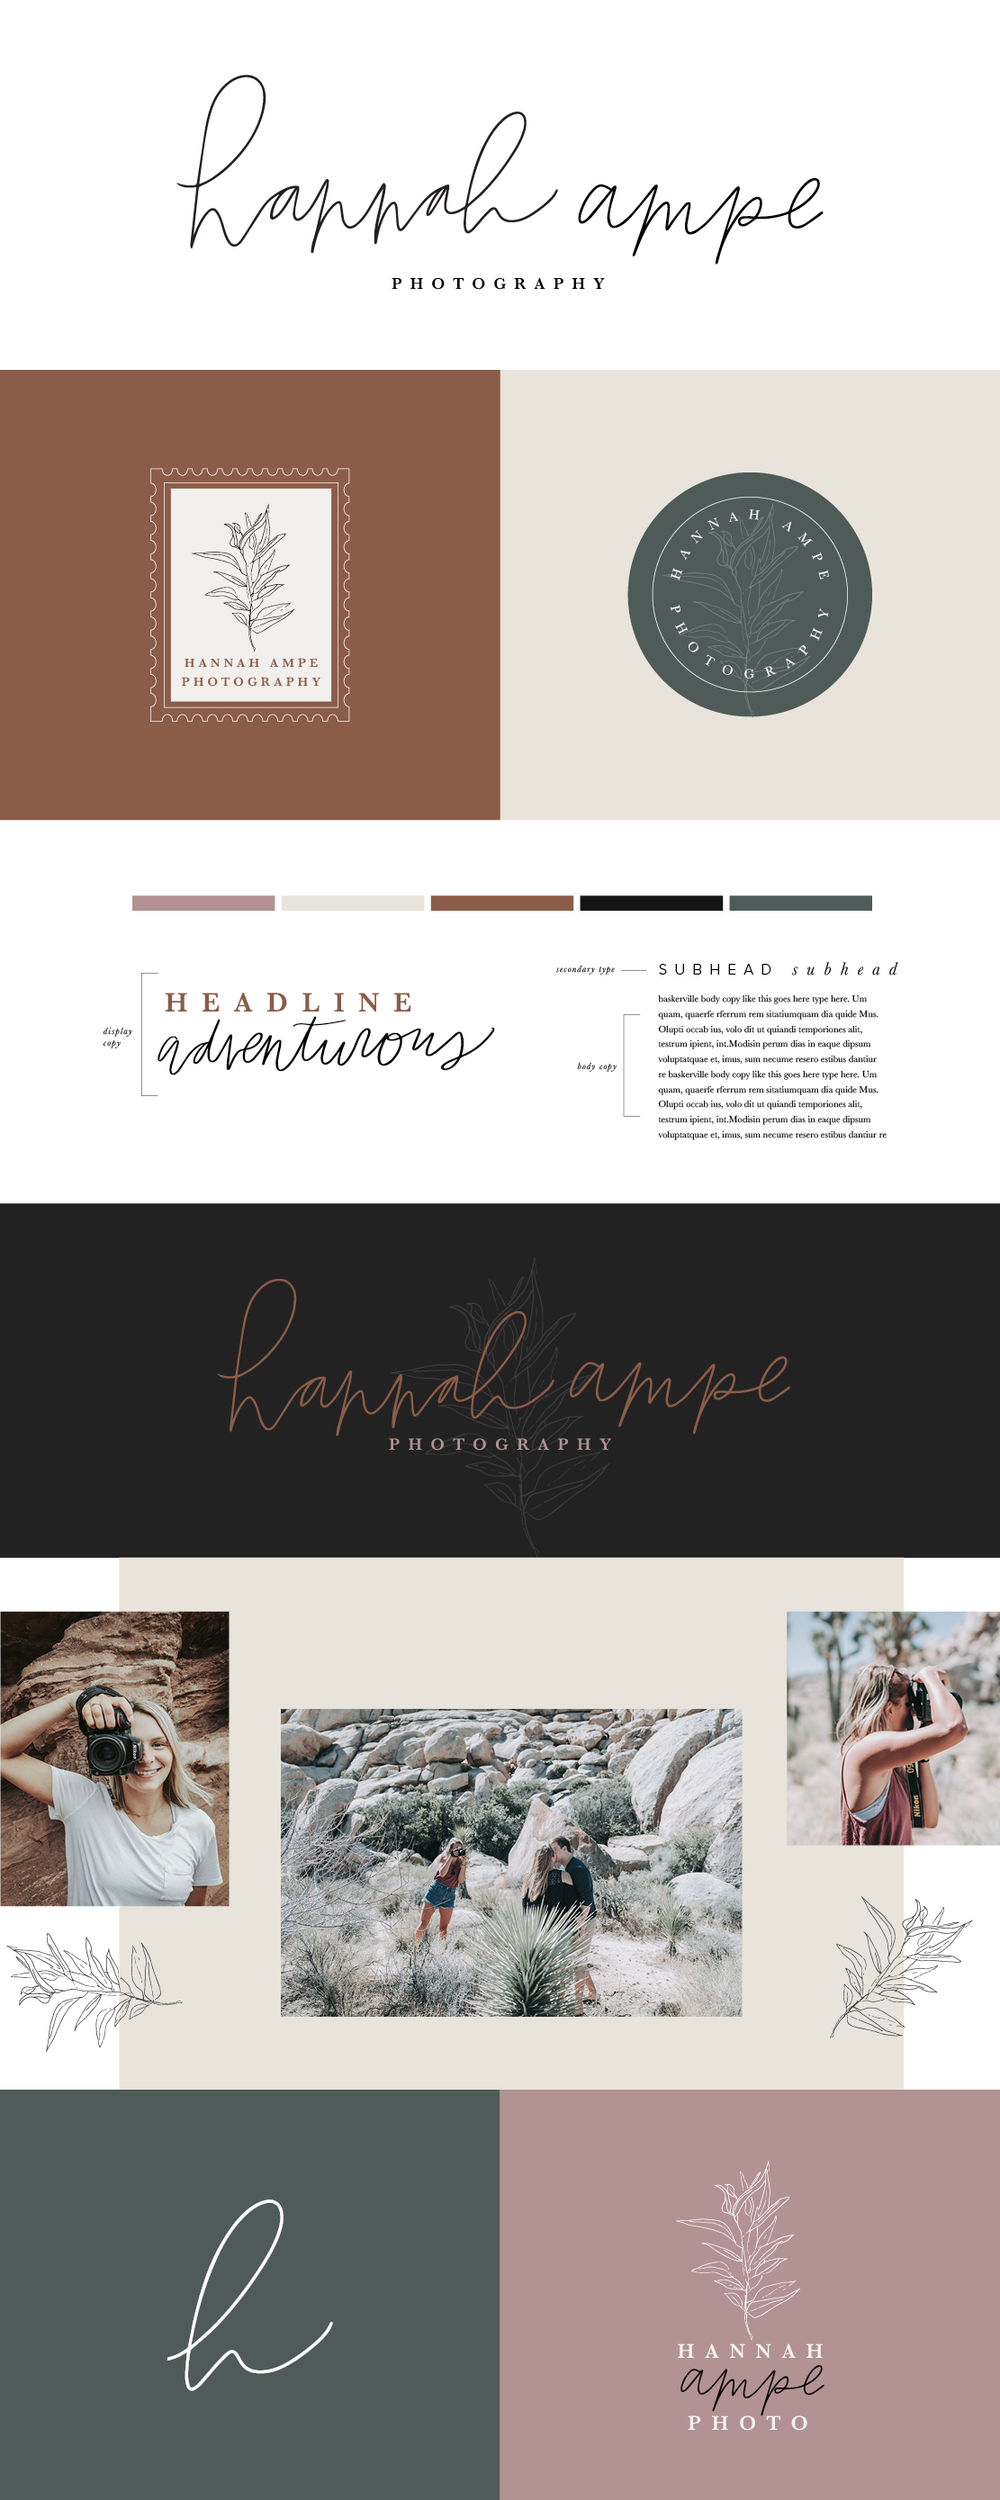 Hannah+Ampe+Photography+Blog+Brighten+Made+Branding+Whimsical+Neutral+hand-drawn+hand-lettered.png